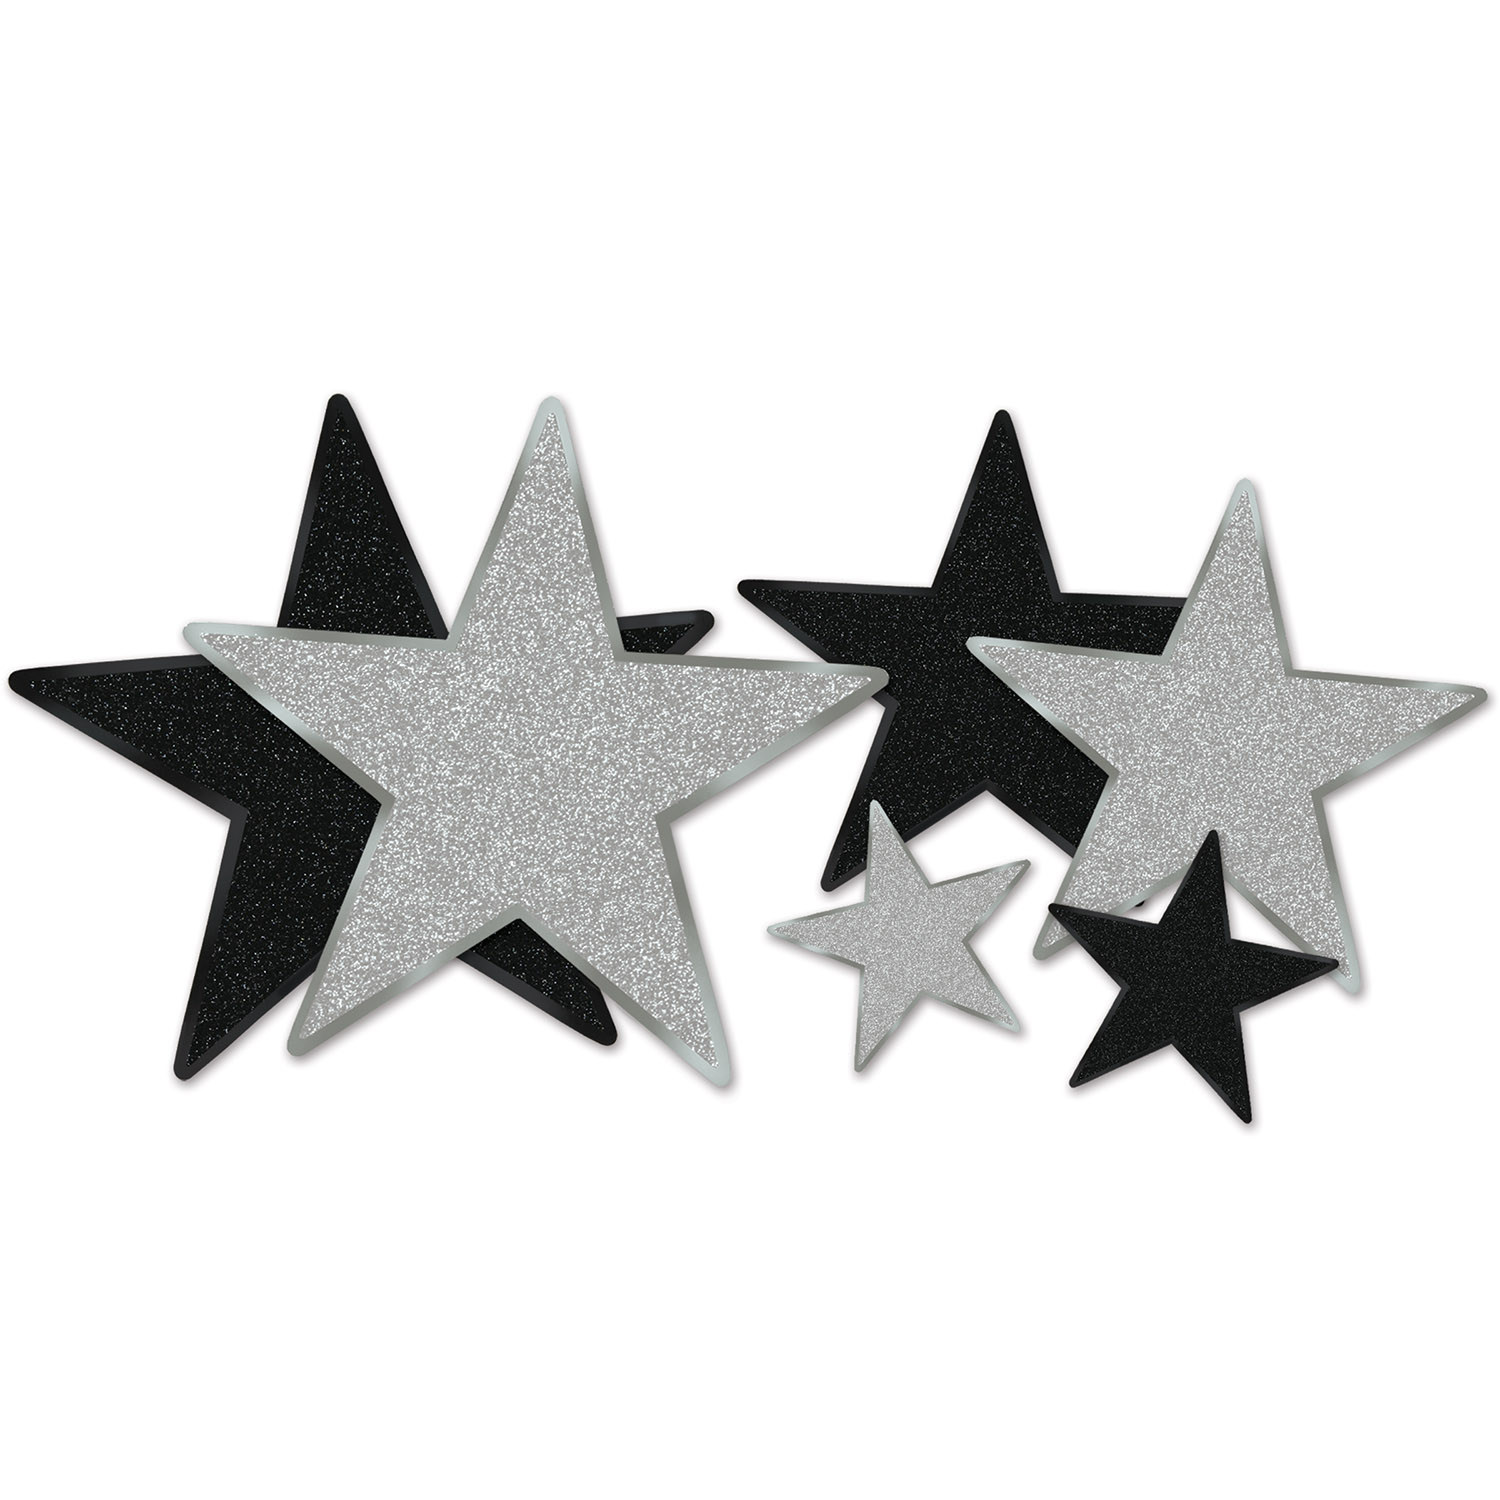 Assorted sized star cutouts in black and silver with glitter.